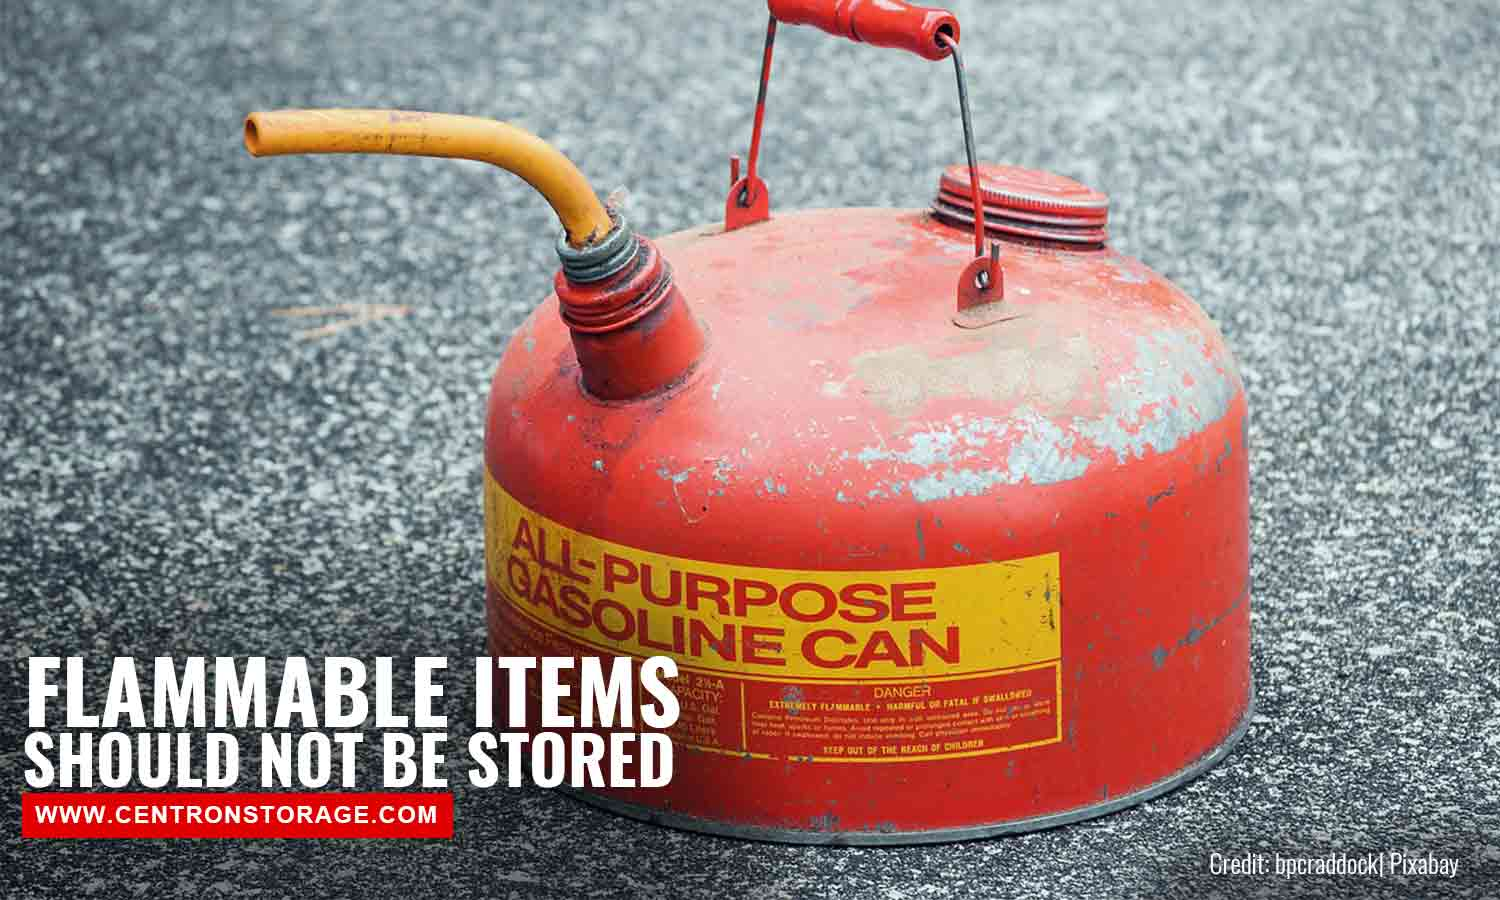 Flammable items should not be stored